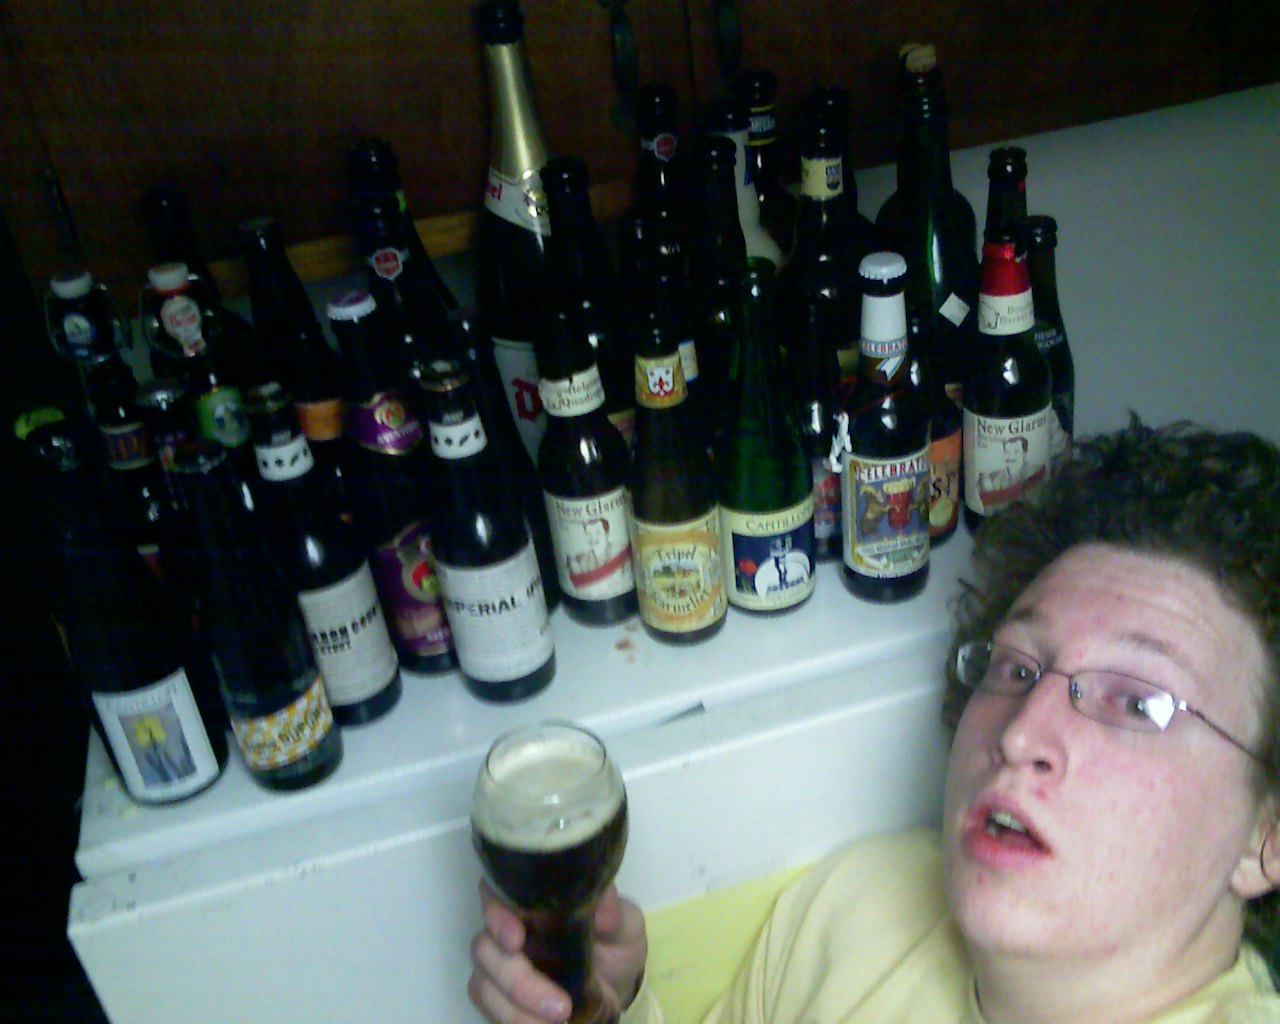 Me and some bottles.